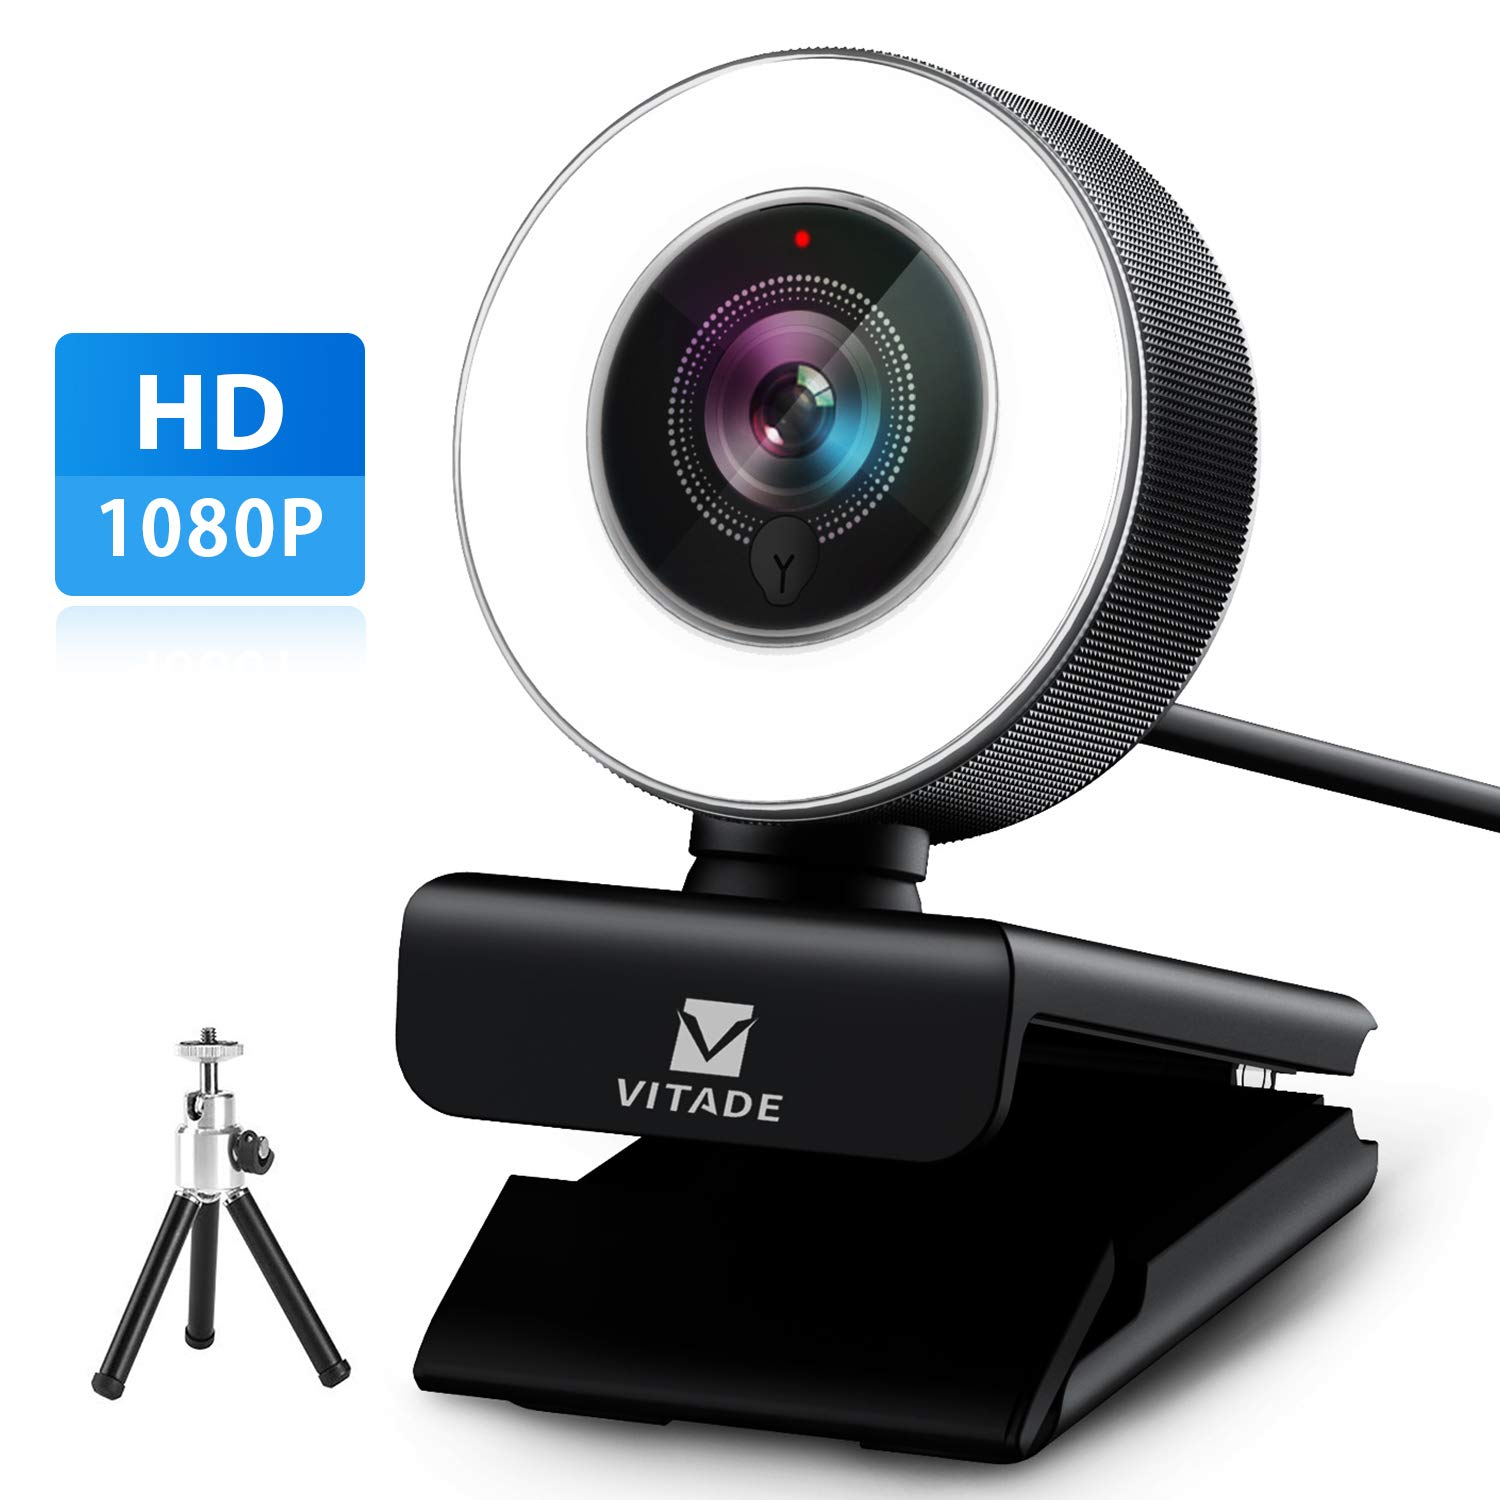 Webcam 1080P with Microphone & Ring Light, Vitade 960A Pro USB HD PC Web Camera Video Cam for Streaming Gaming Conferencing Mac Windows Desktop Computer Xbox Skype OBS Twitch Youtube (Tripod Included) by Vitade